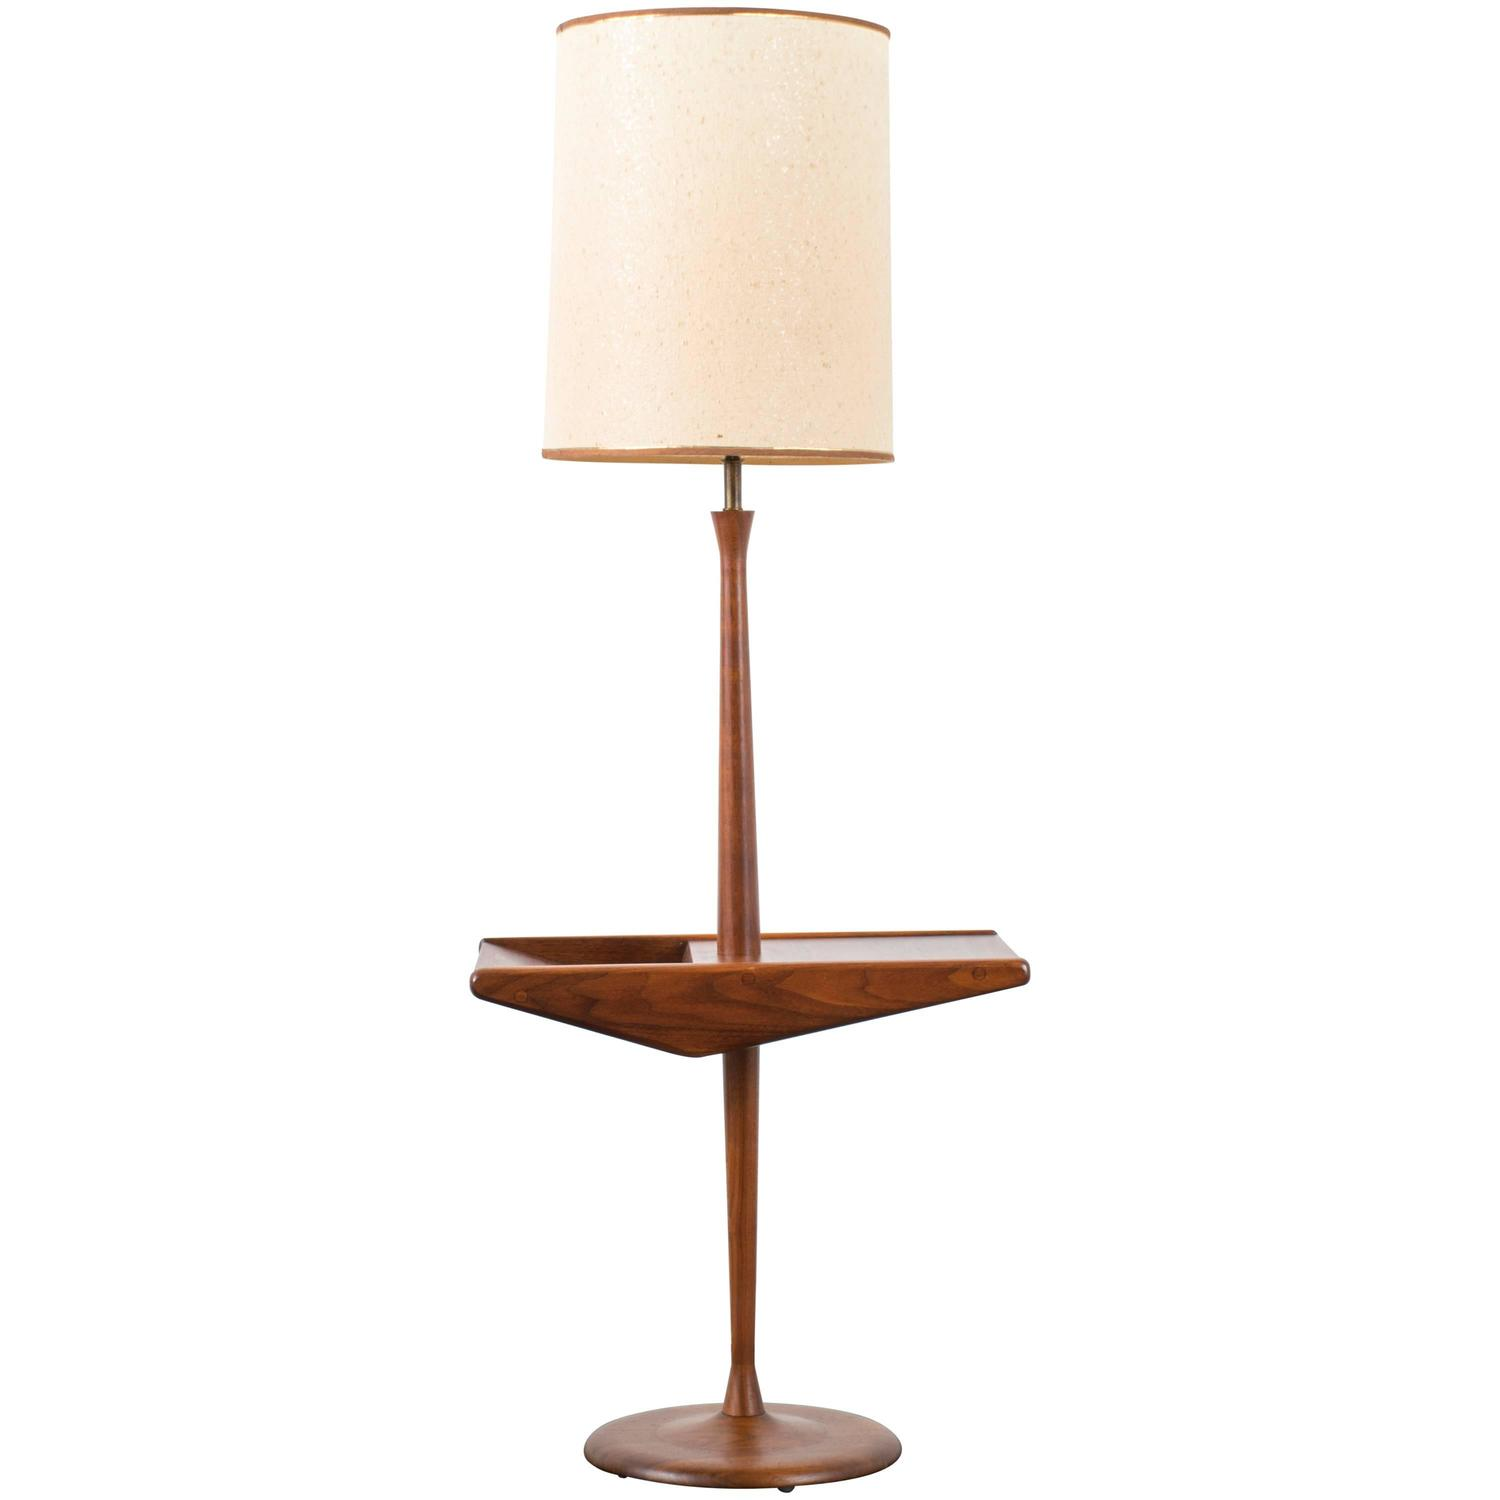 mid century modern floor lamp by laurel lamp at 1stdibs. Black Bedroom Furniture Sets. Home Design Ideas